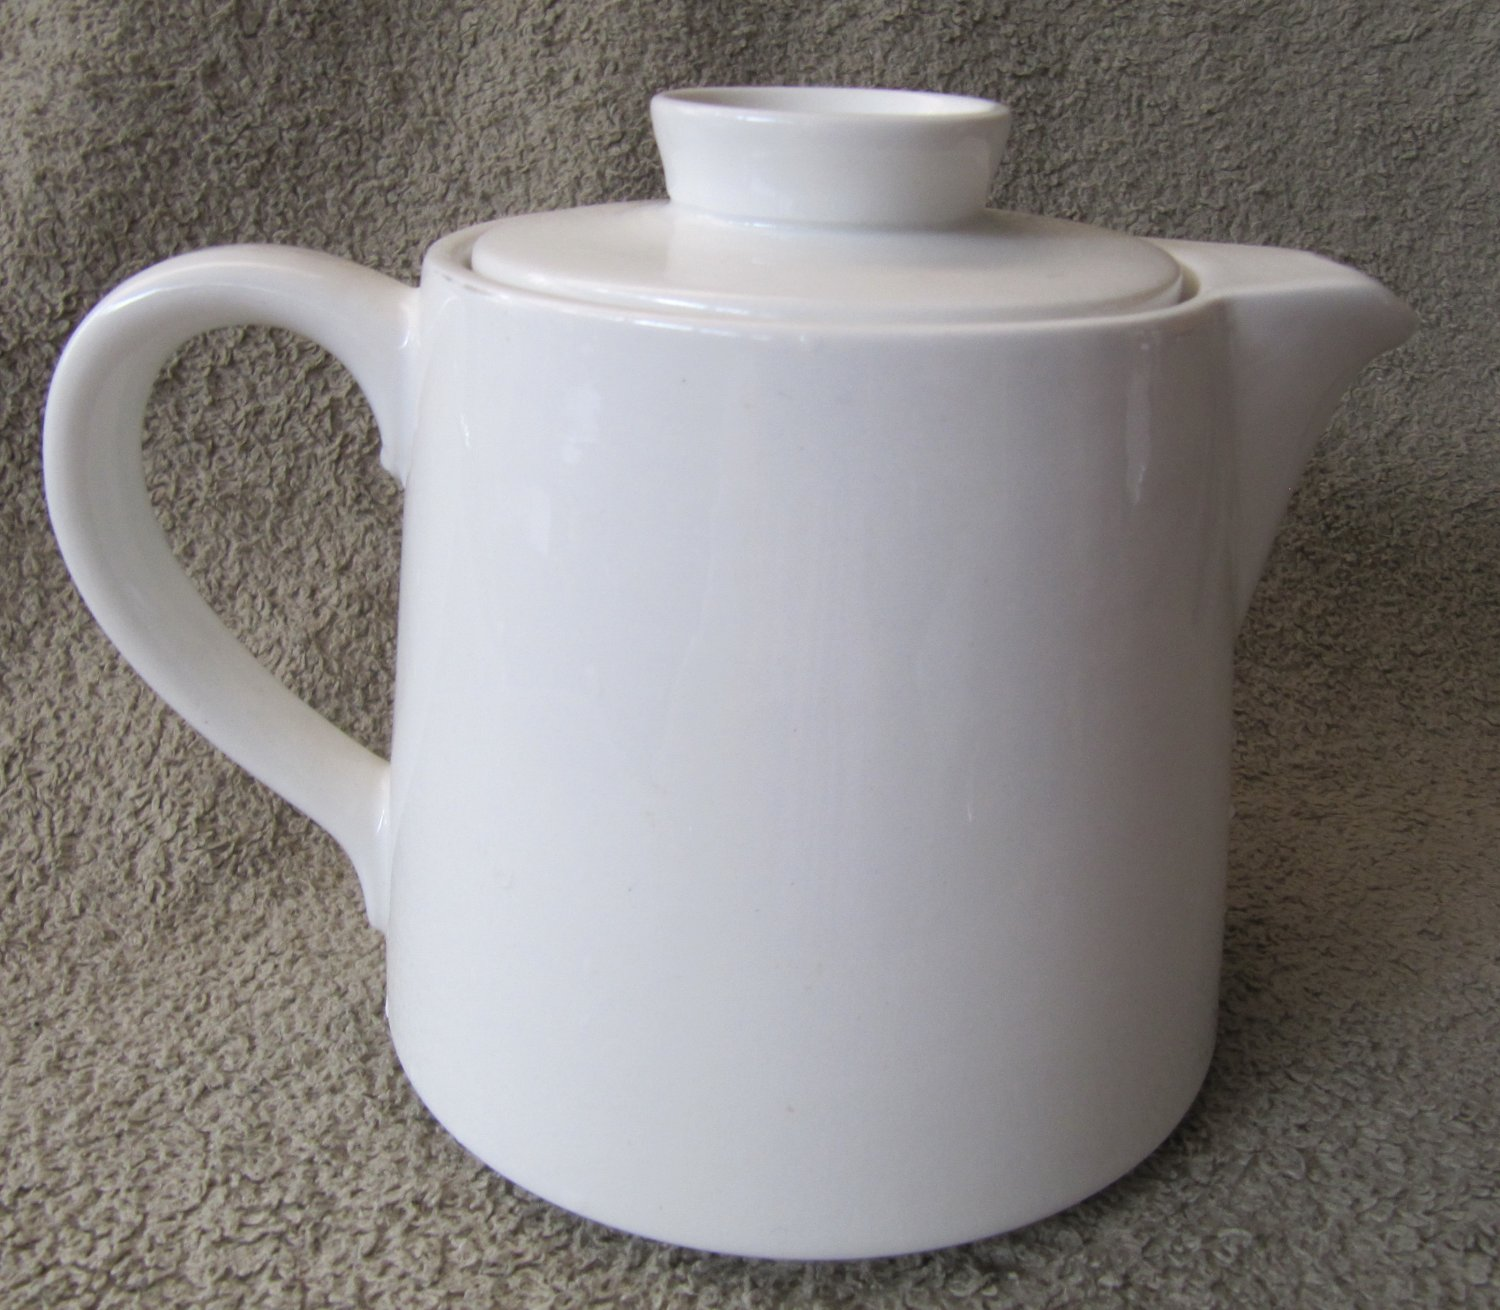 Vintage Cracked Arabia Of Finland White Ceramic Coffee Pot